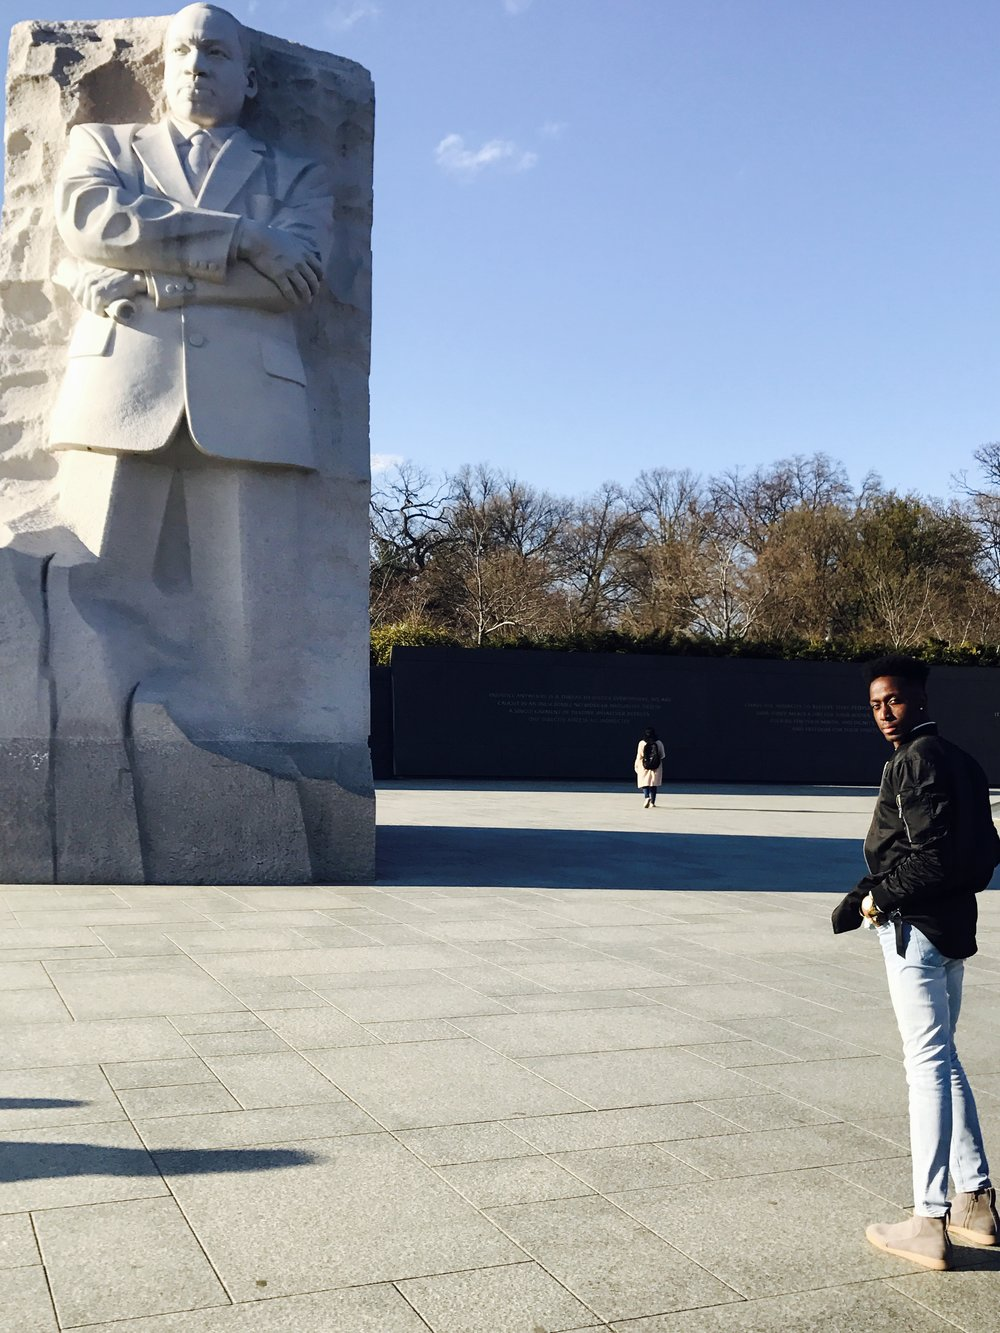 Noah at the MLK Monument